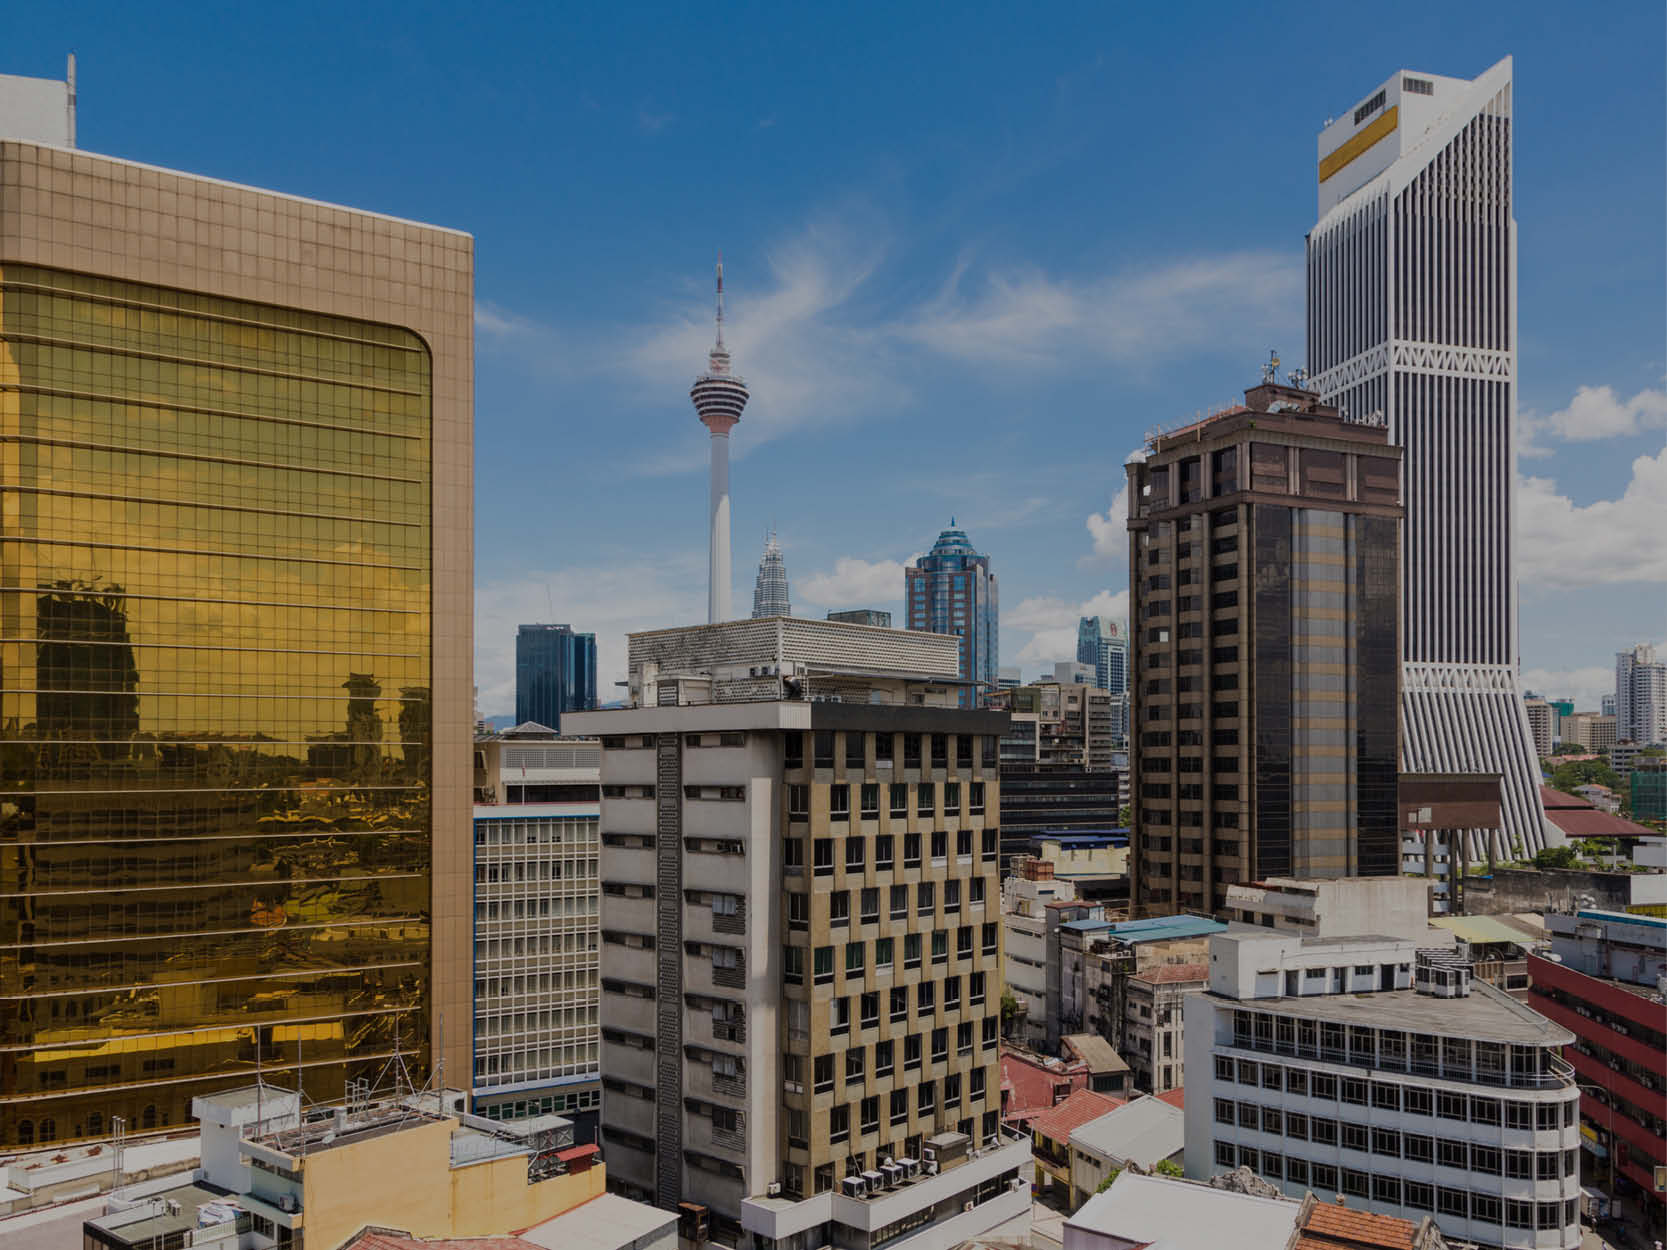 Serviced Office, Coworking, Office Space, Shared Office or virtual Office in Bukit Bintang